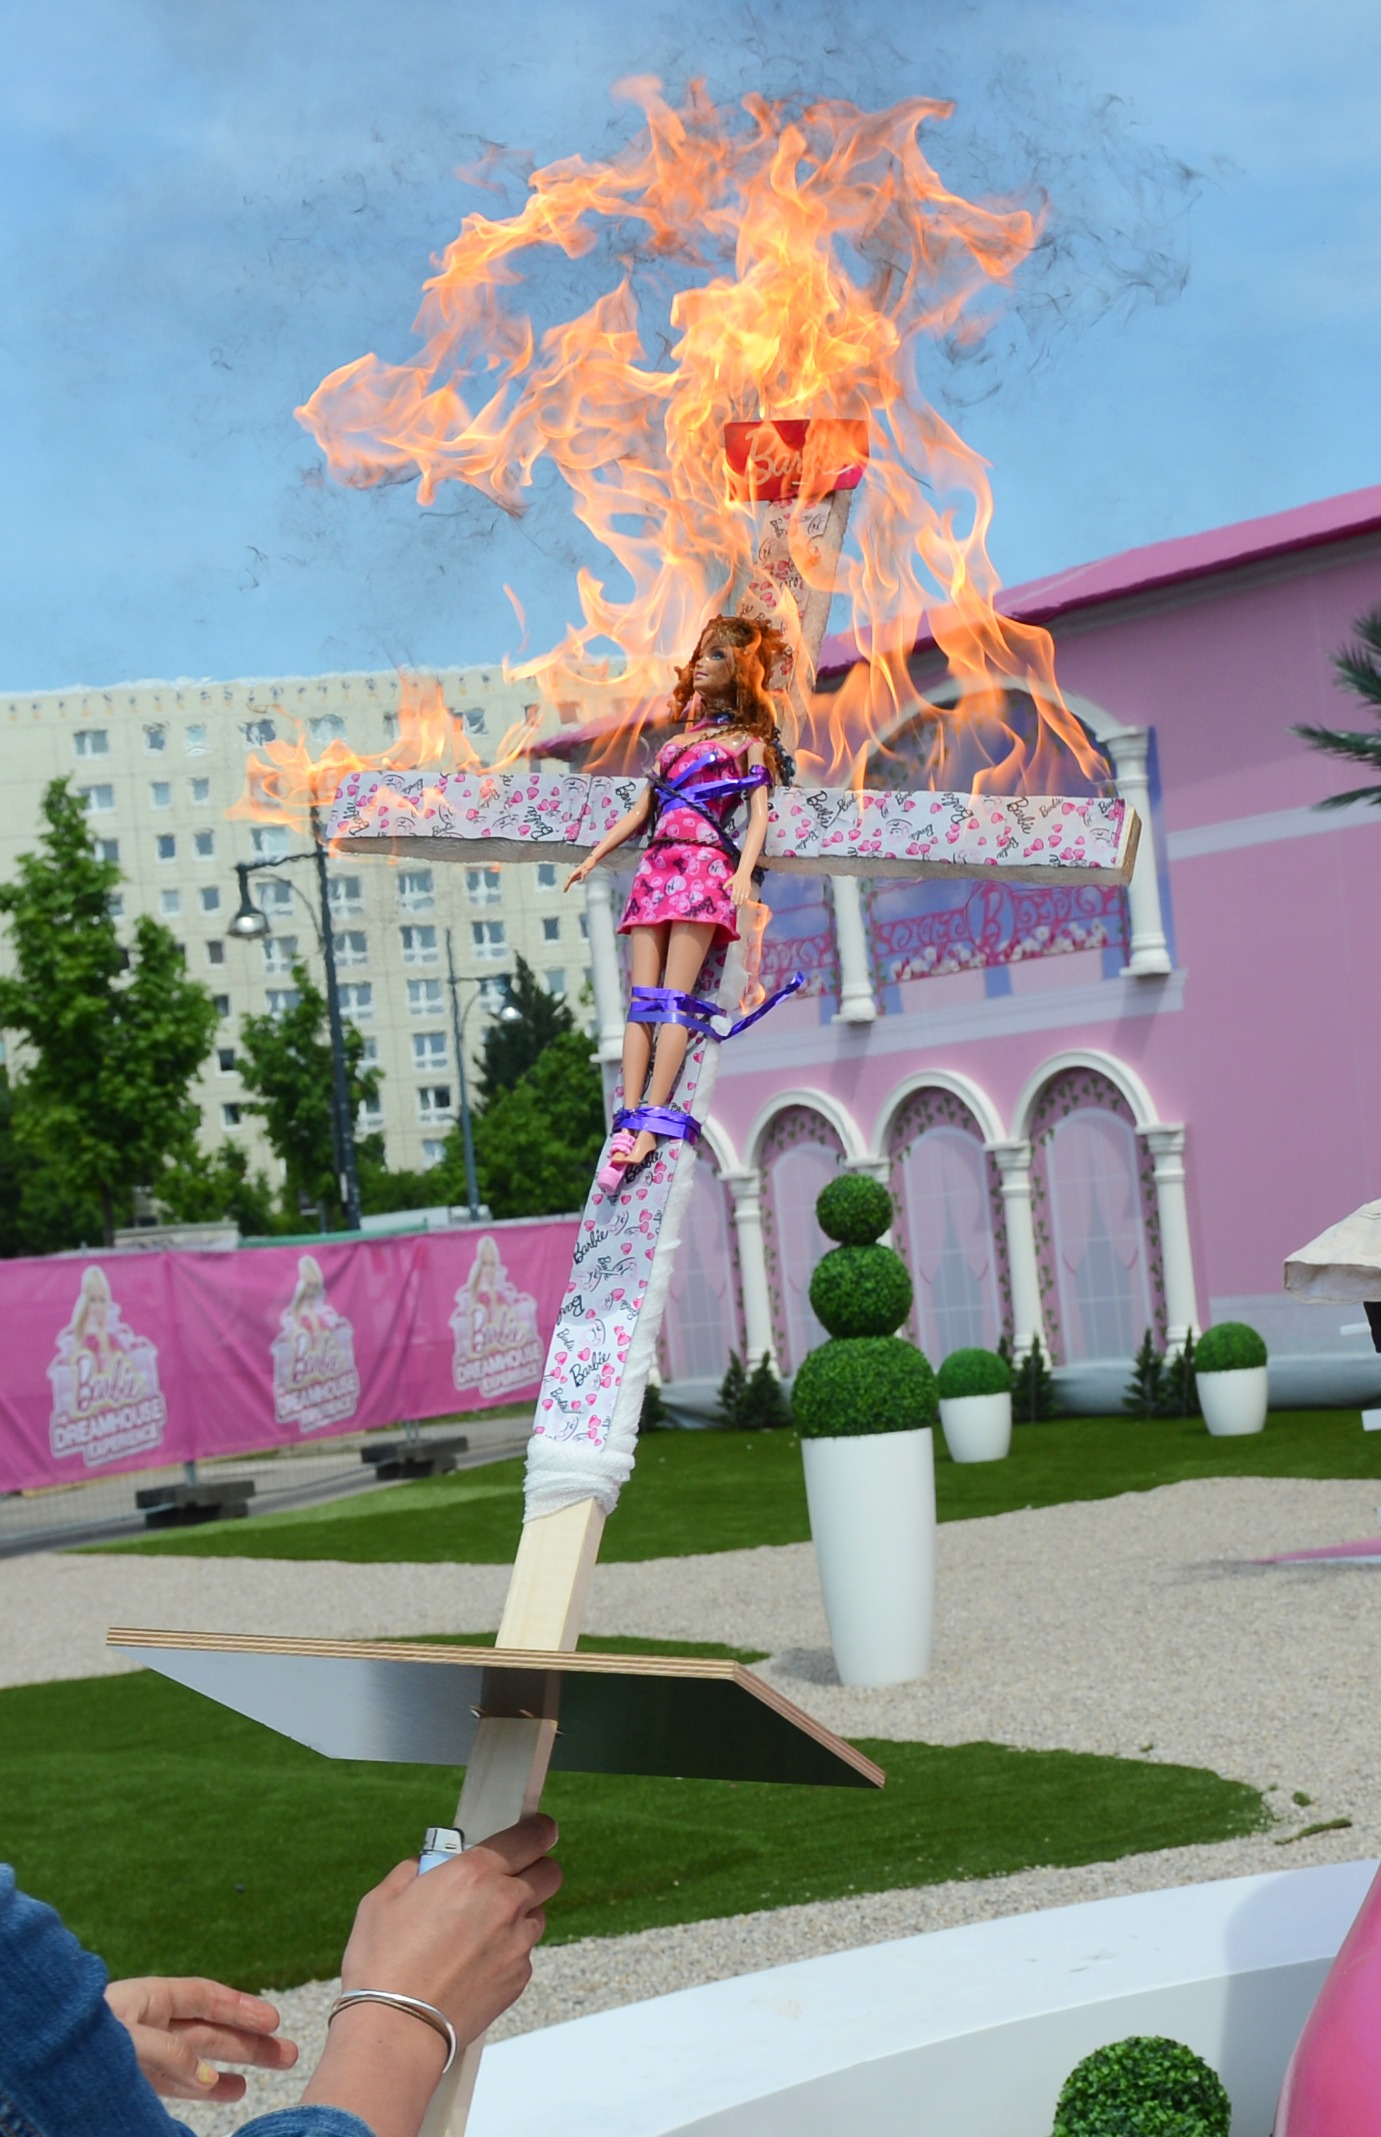 From the book Awkward Politics: Barbie Dreamhouse Experience in Berlin, May 2013; epa